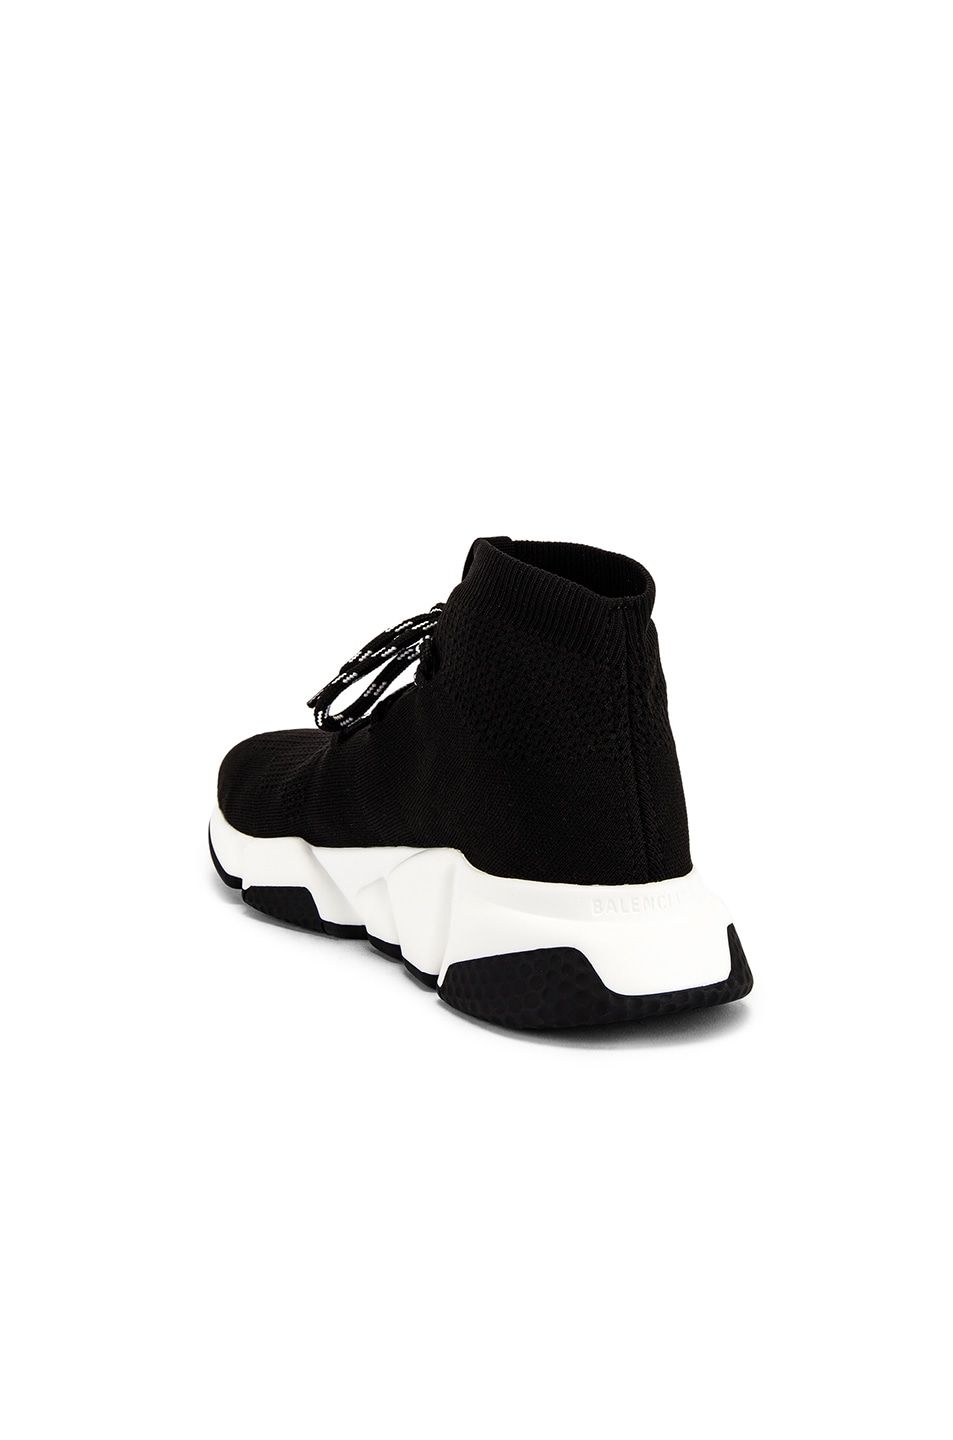 Image 3 of Balenciaga Speed Light Lace-Up Sneaker in Black